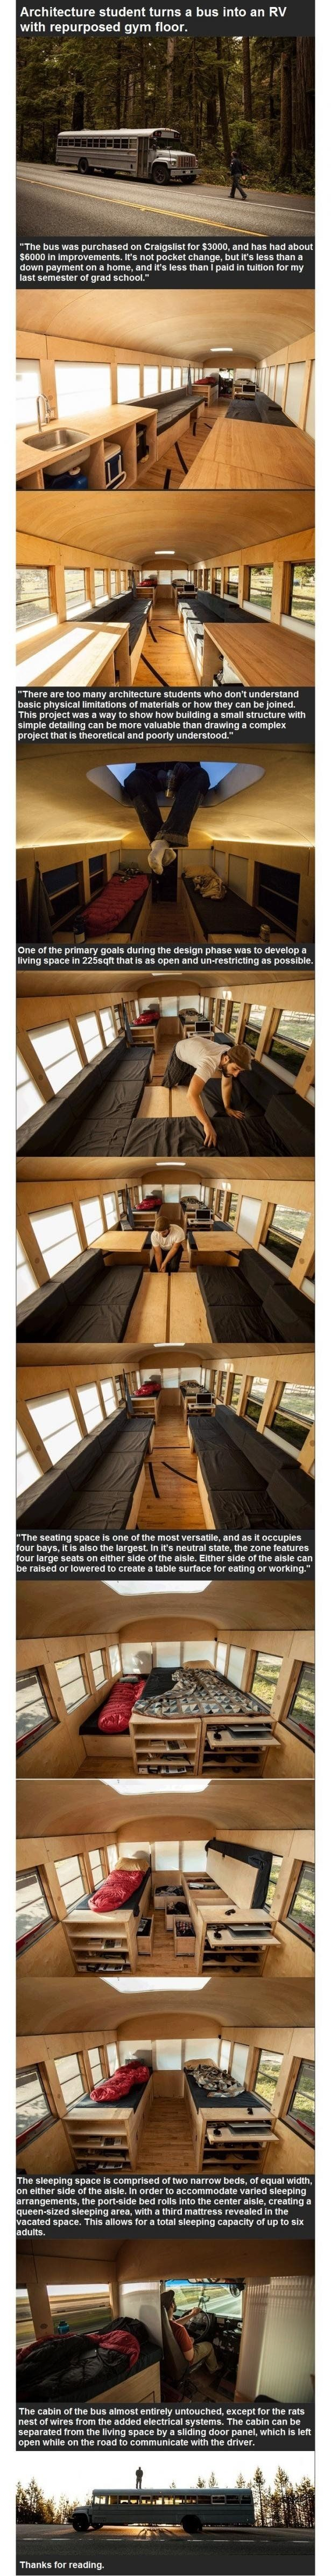 Bus converted into an RV